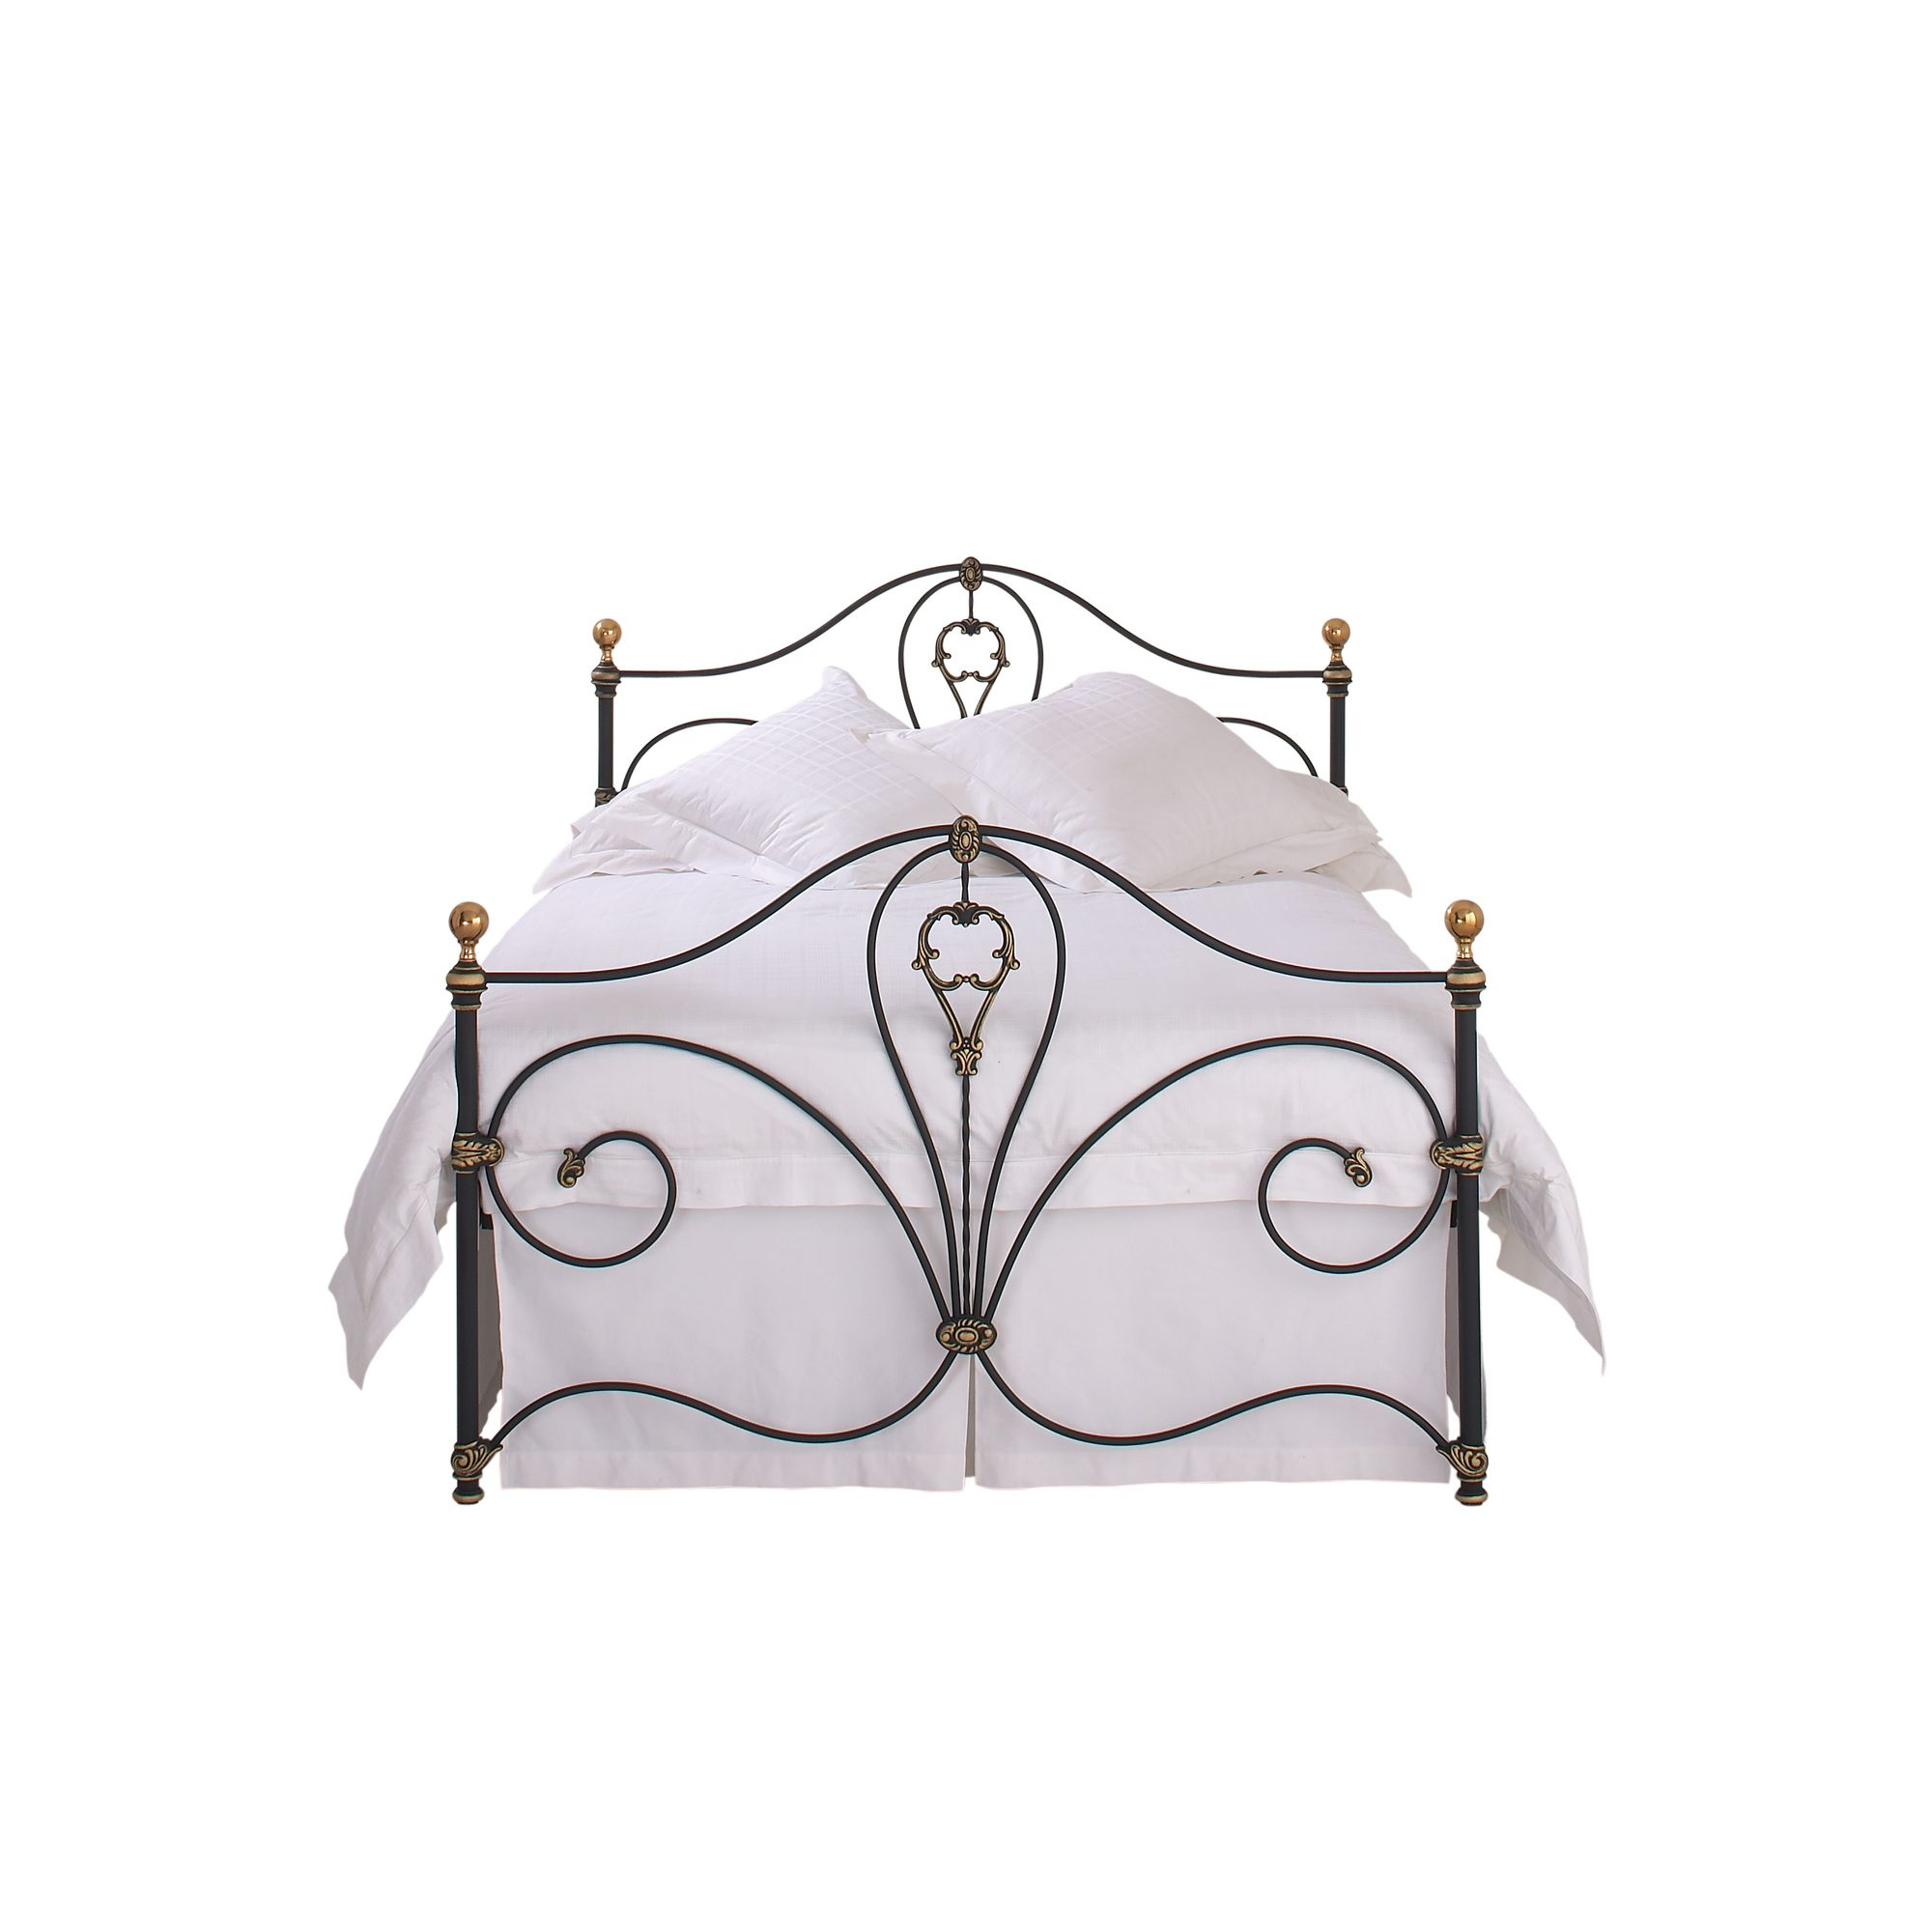 OBC Melrose Bed Frame - Small double - Textured Ivory / Gold Highlights at Tesco Direct